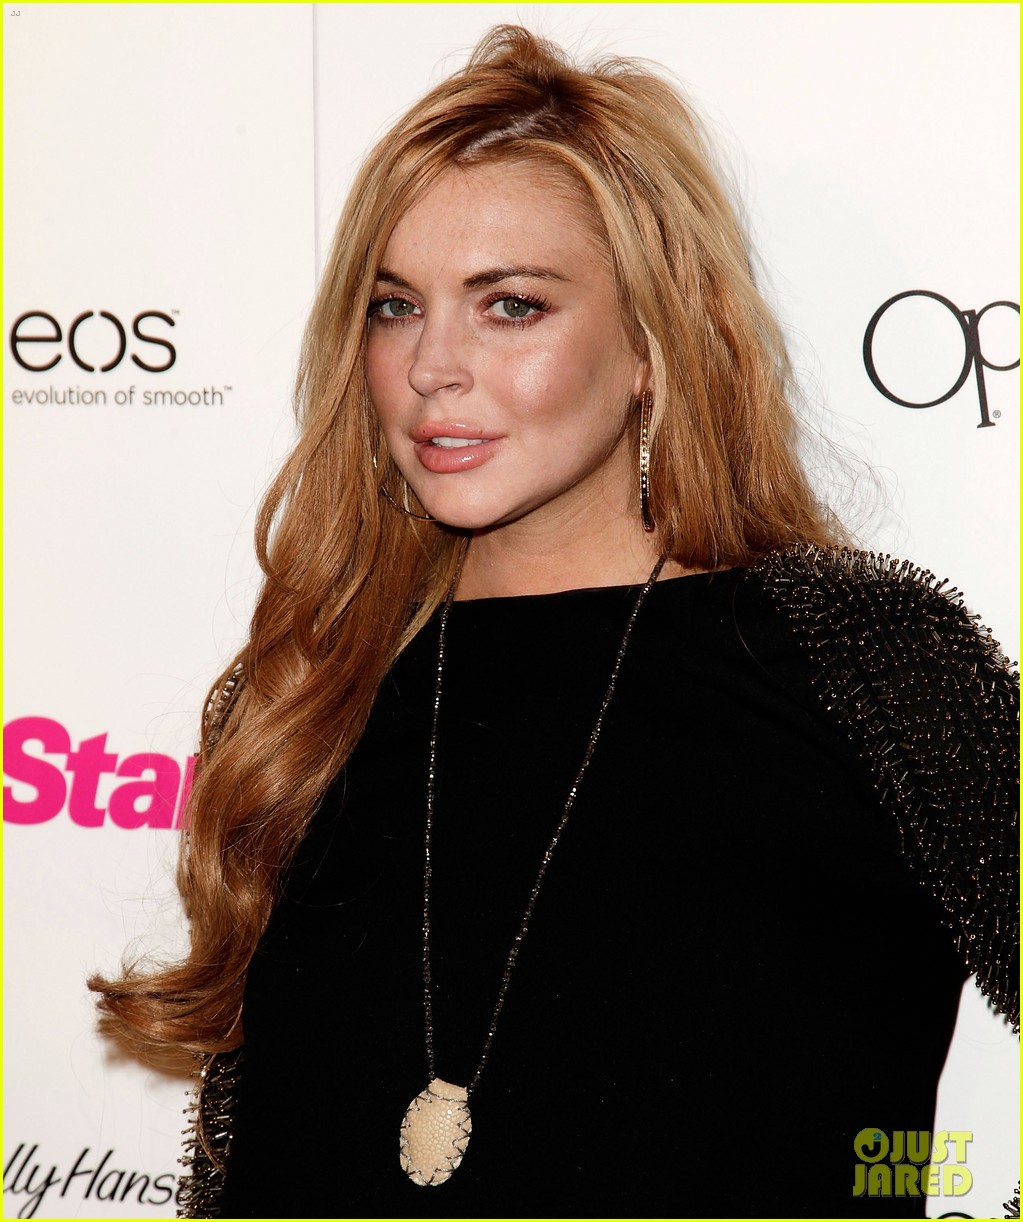 lindsay lohan star magazines all hollywood party 11